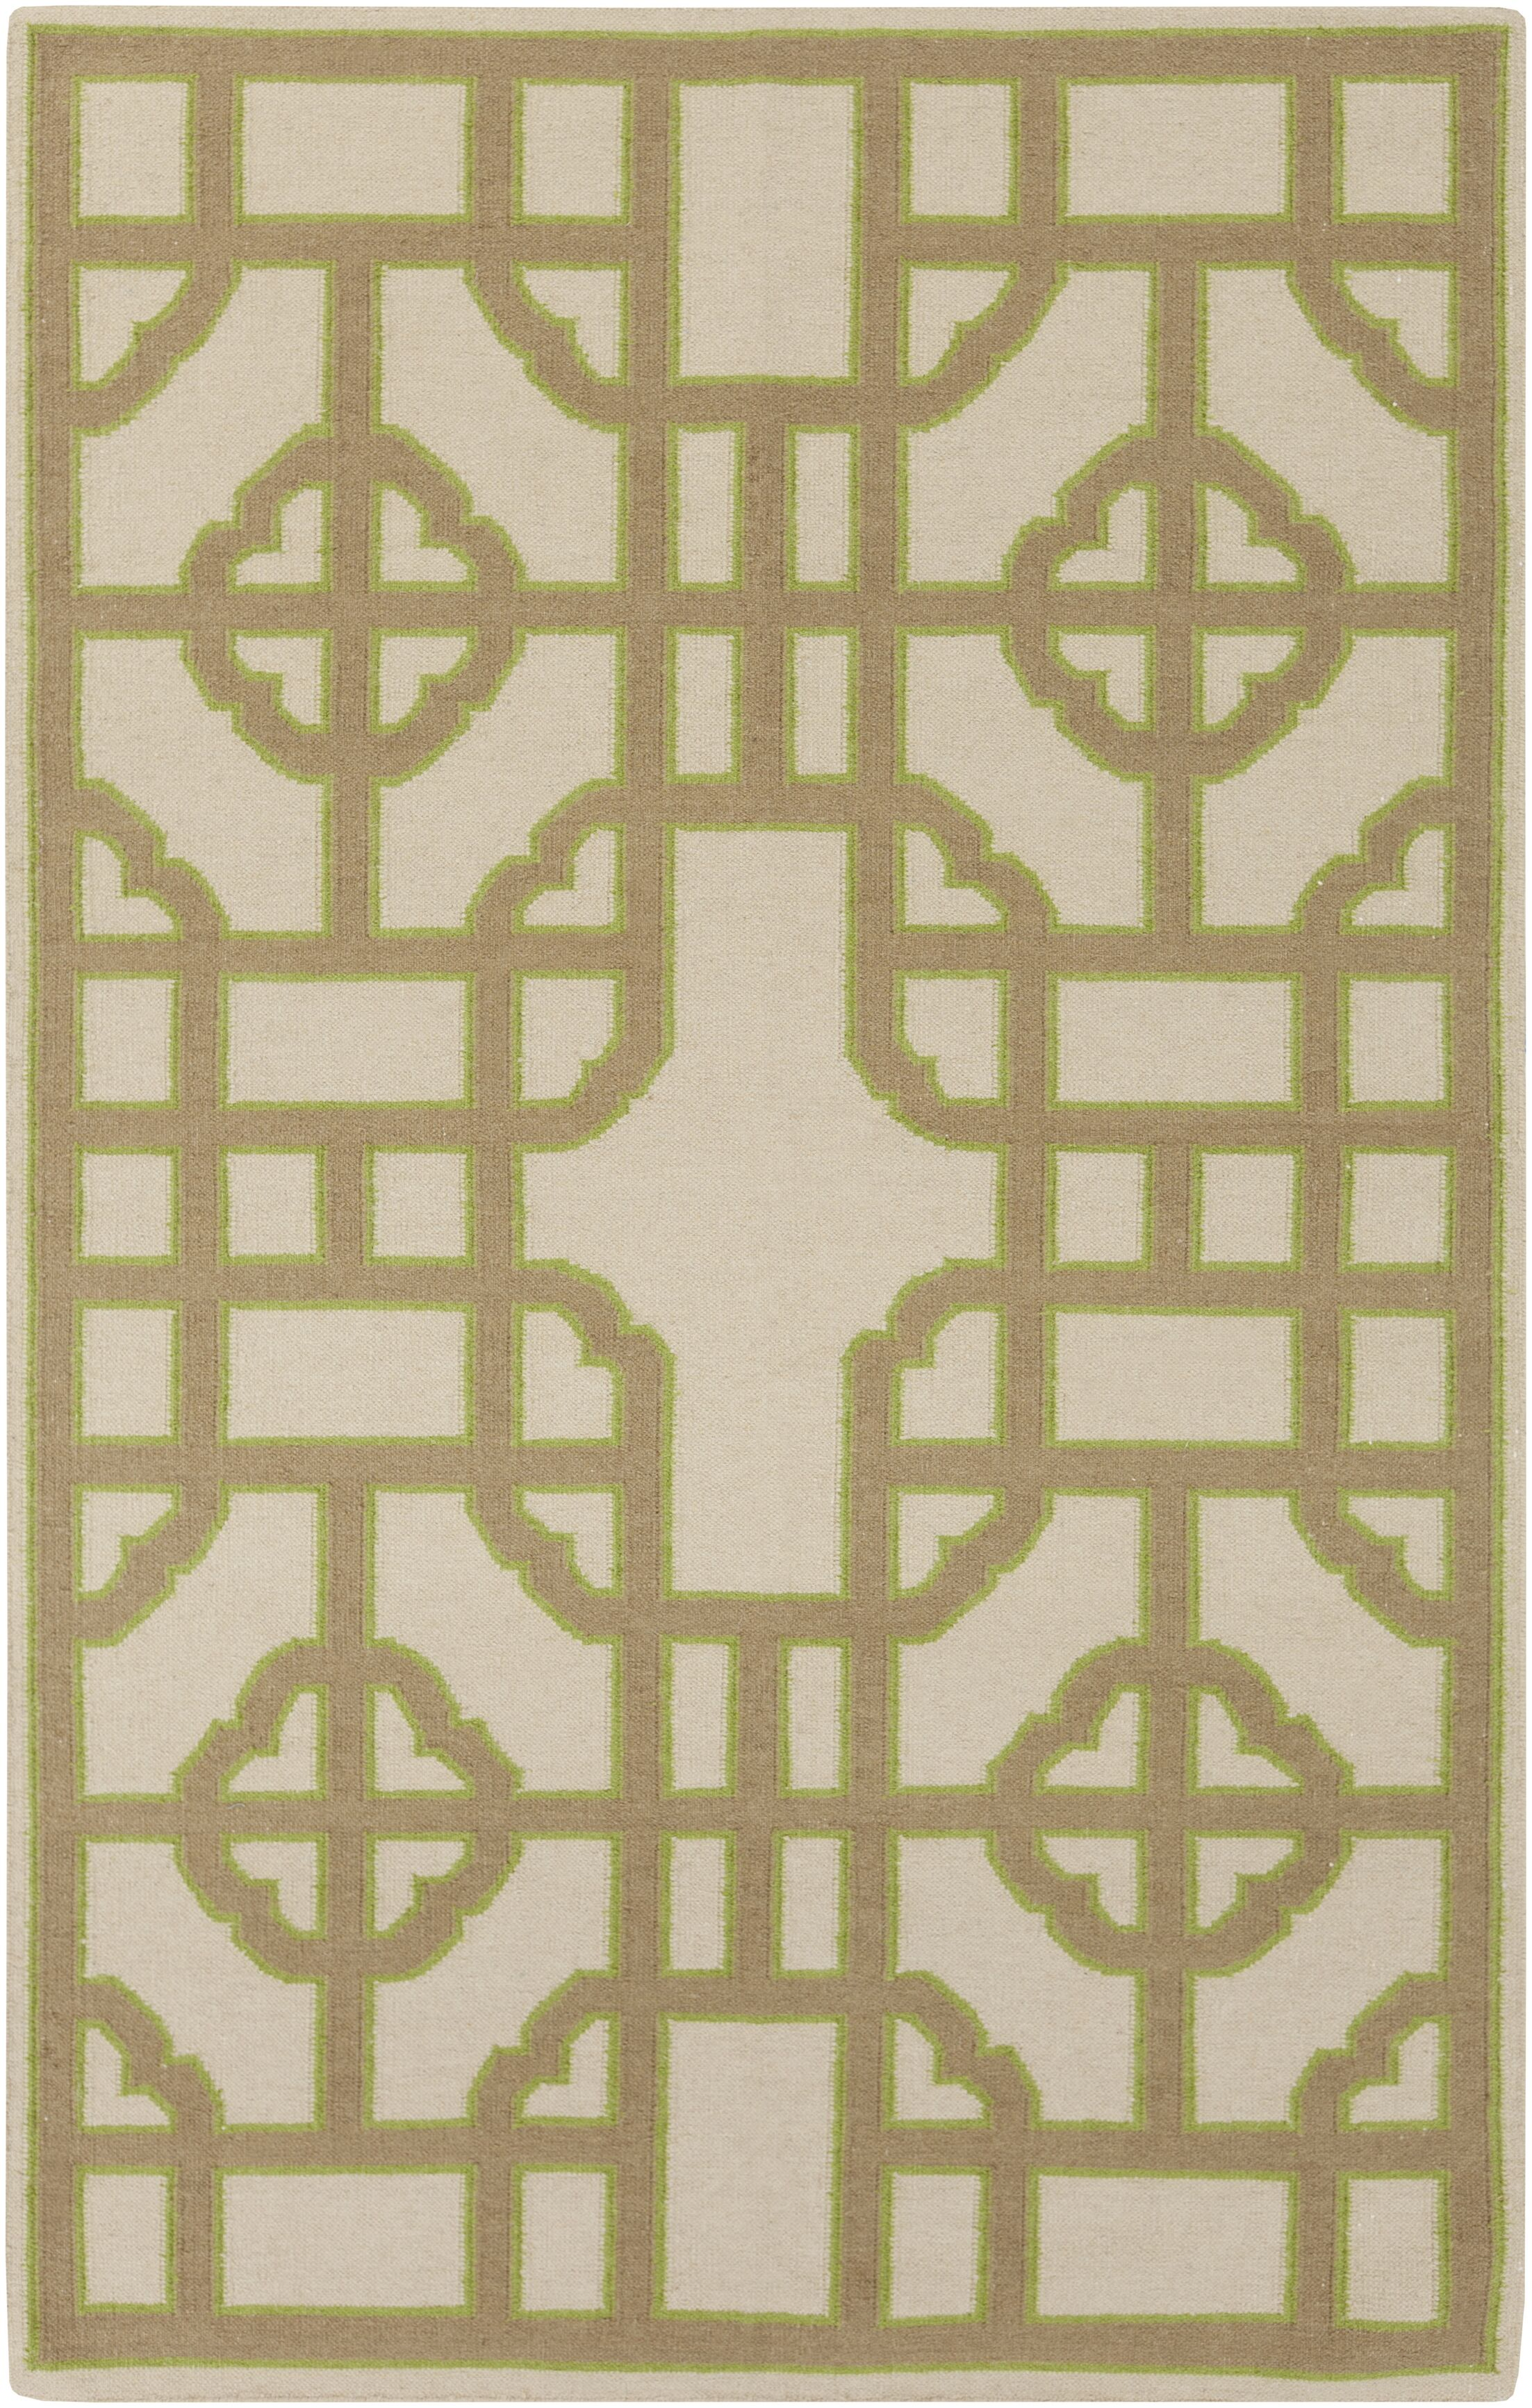 Elsmere Beige/Taupe Geometric Hand Woven Area Rug Rug Size: Rectangle 5' x 8'